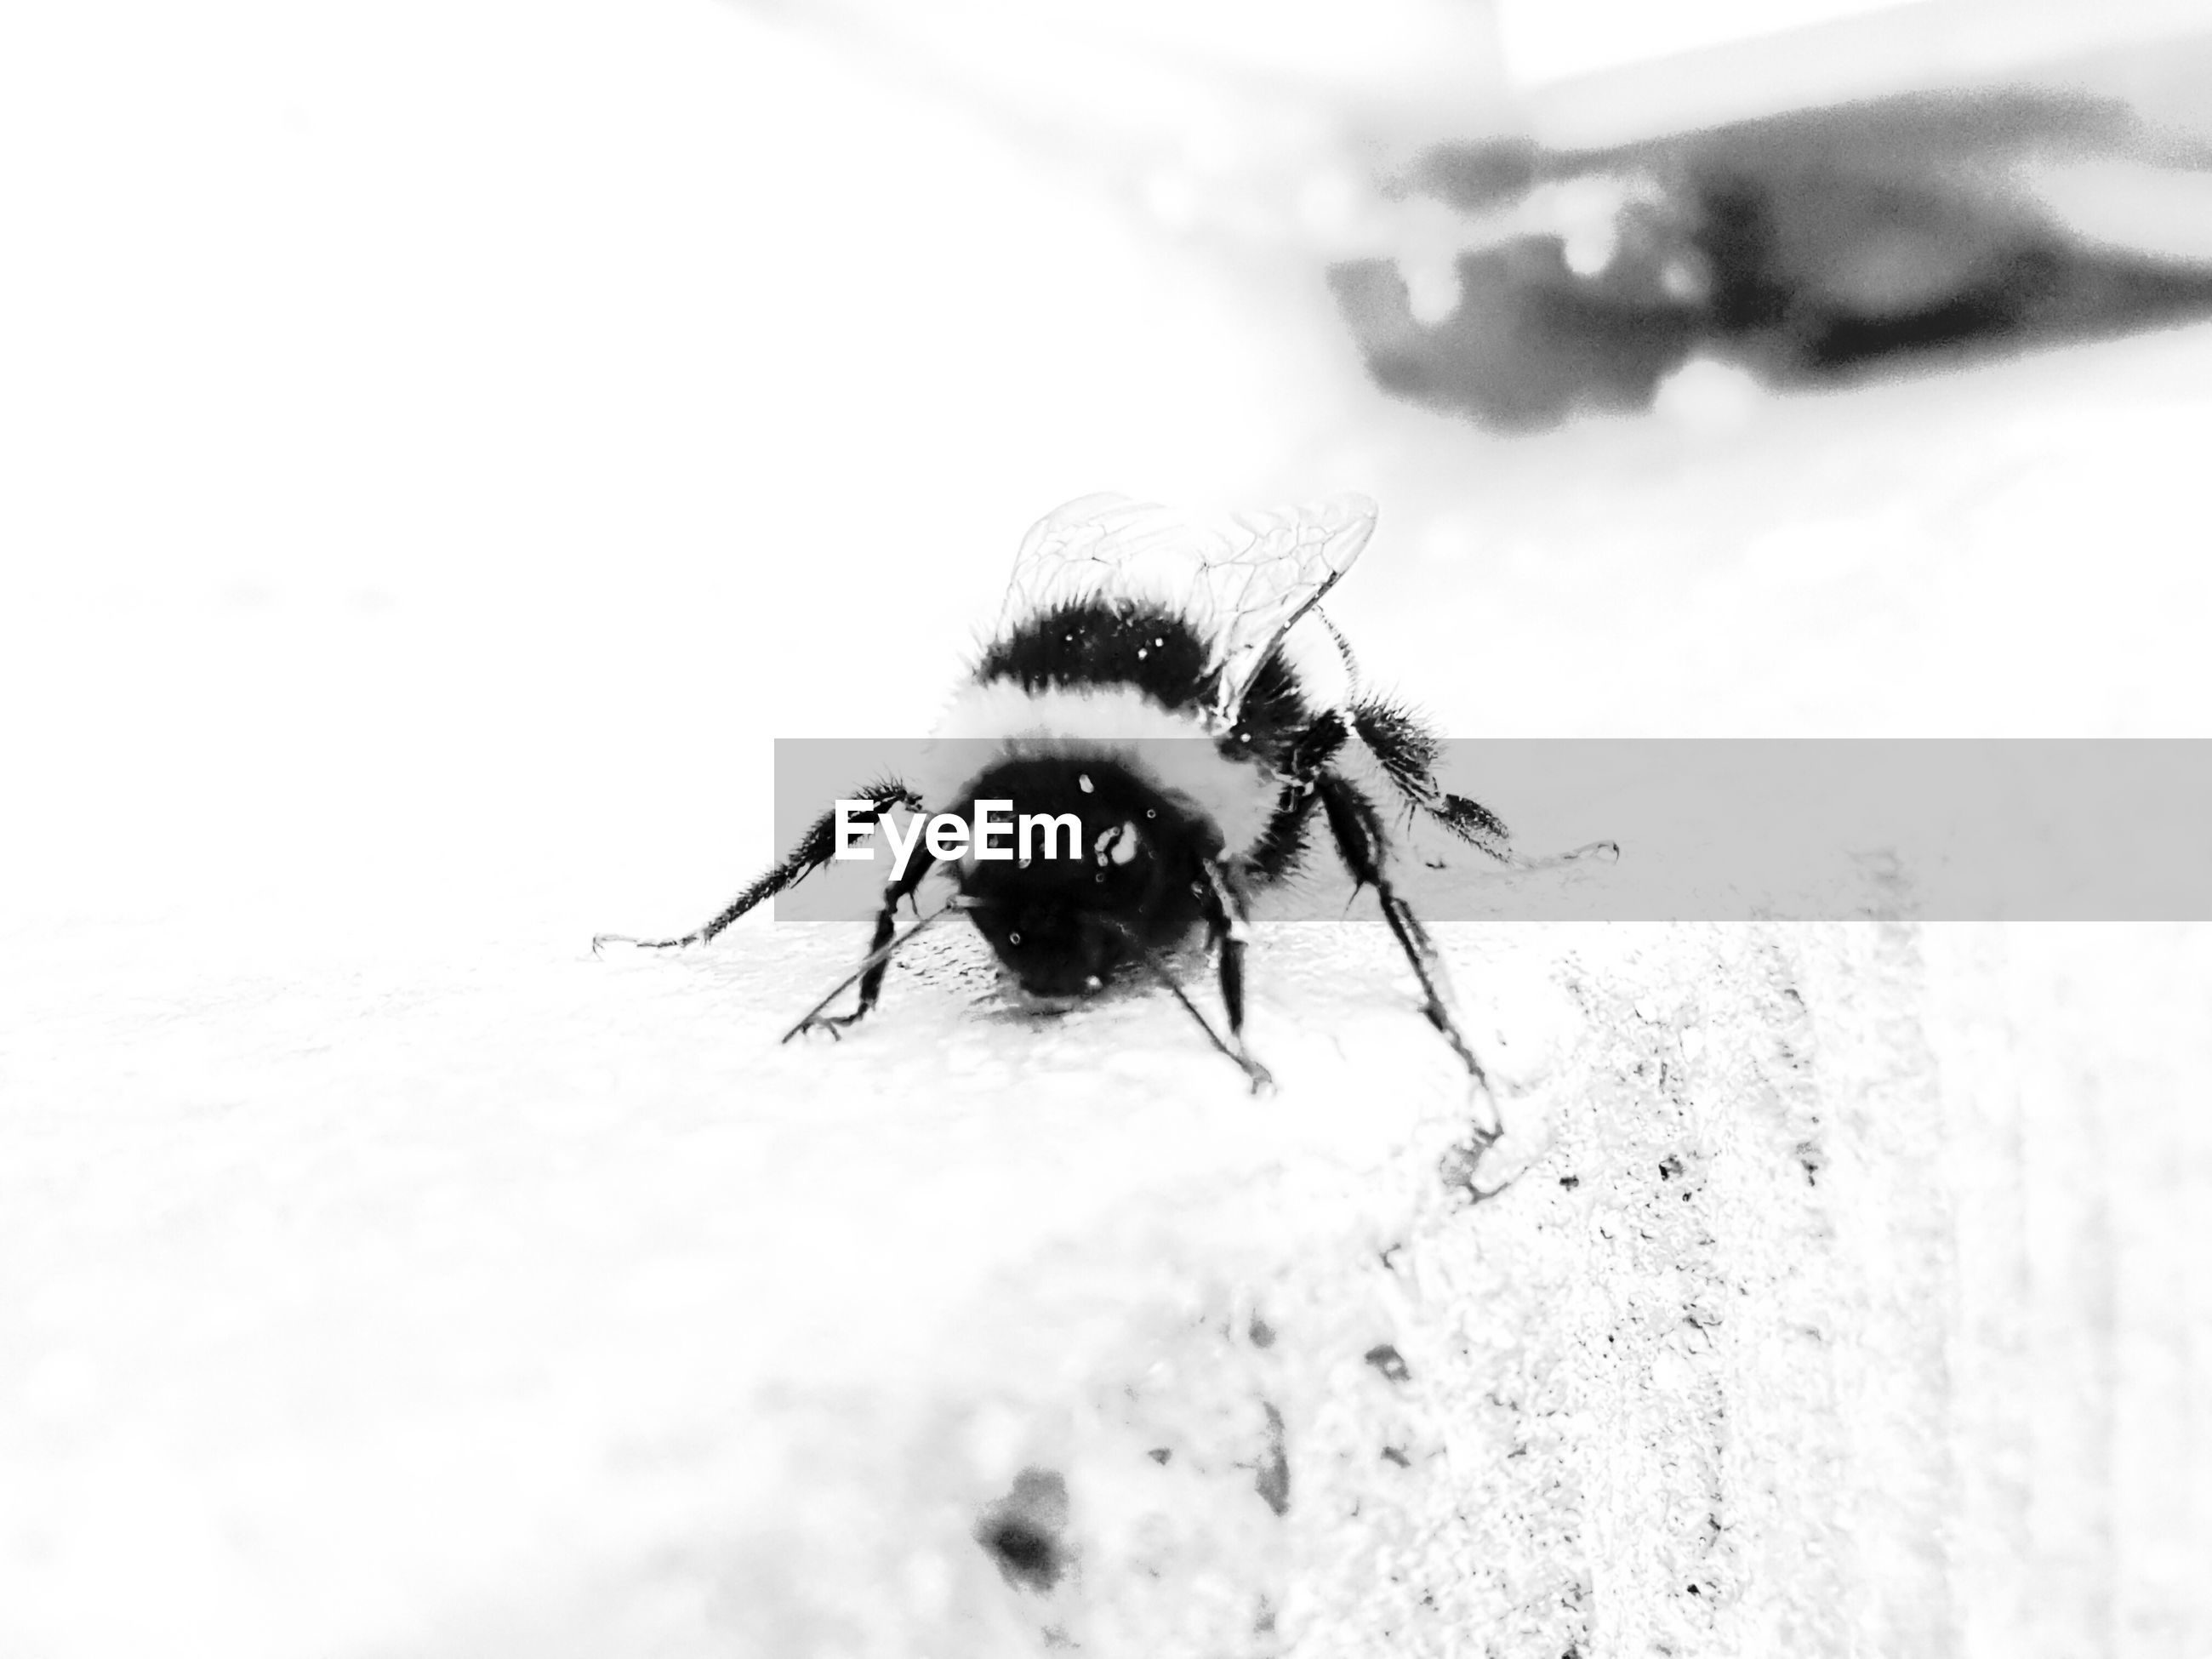 insect, animal themes, close-up, one animal, animals in the wild, no people, nature, day, outdoors, jumping spider